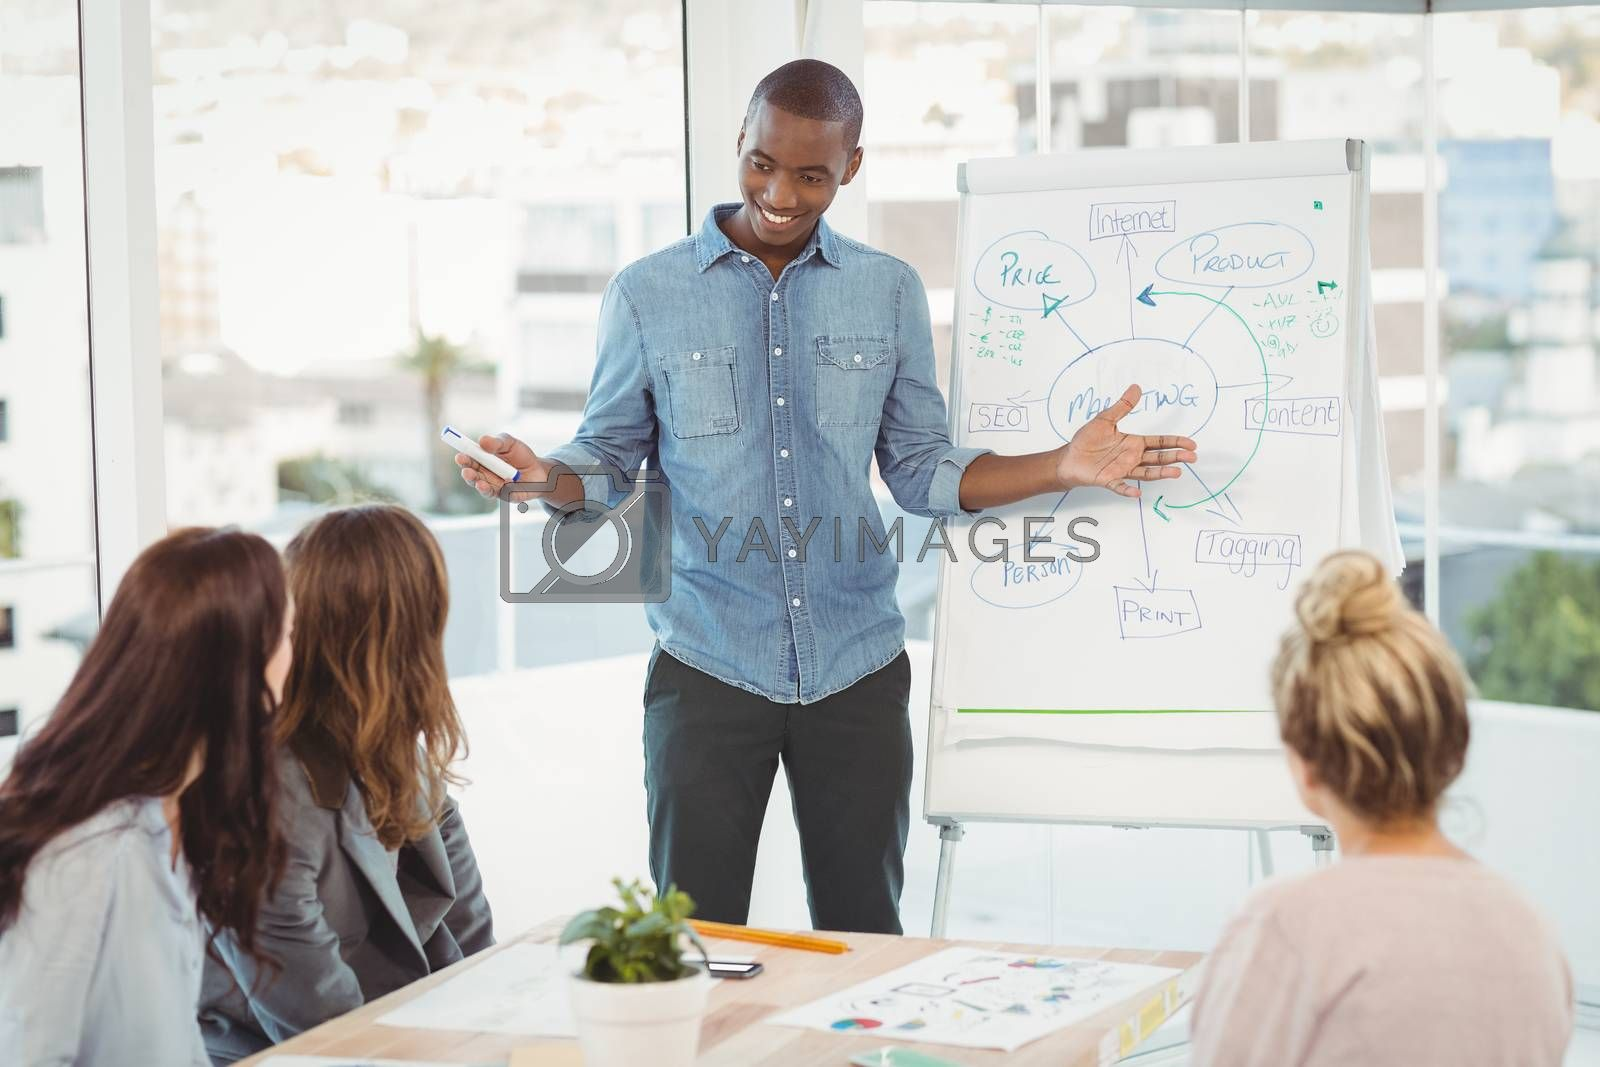 Man gesturing by white board while discussing with coworkers at office